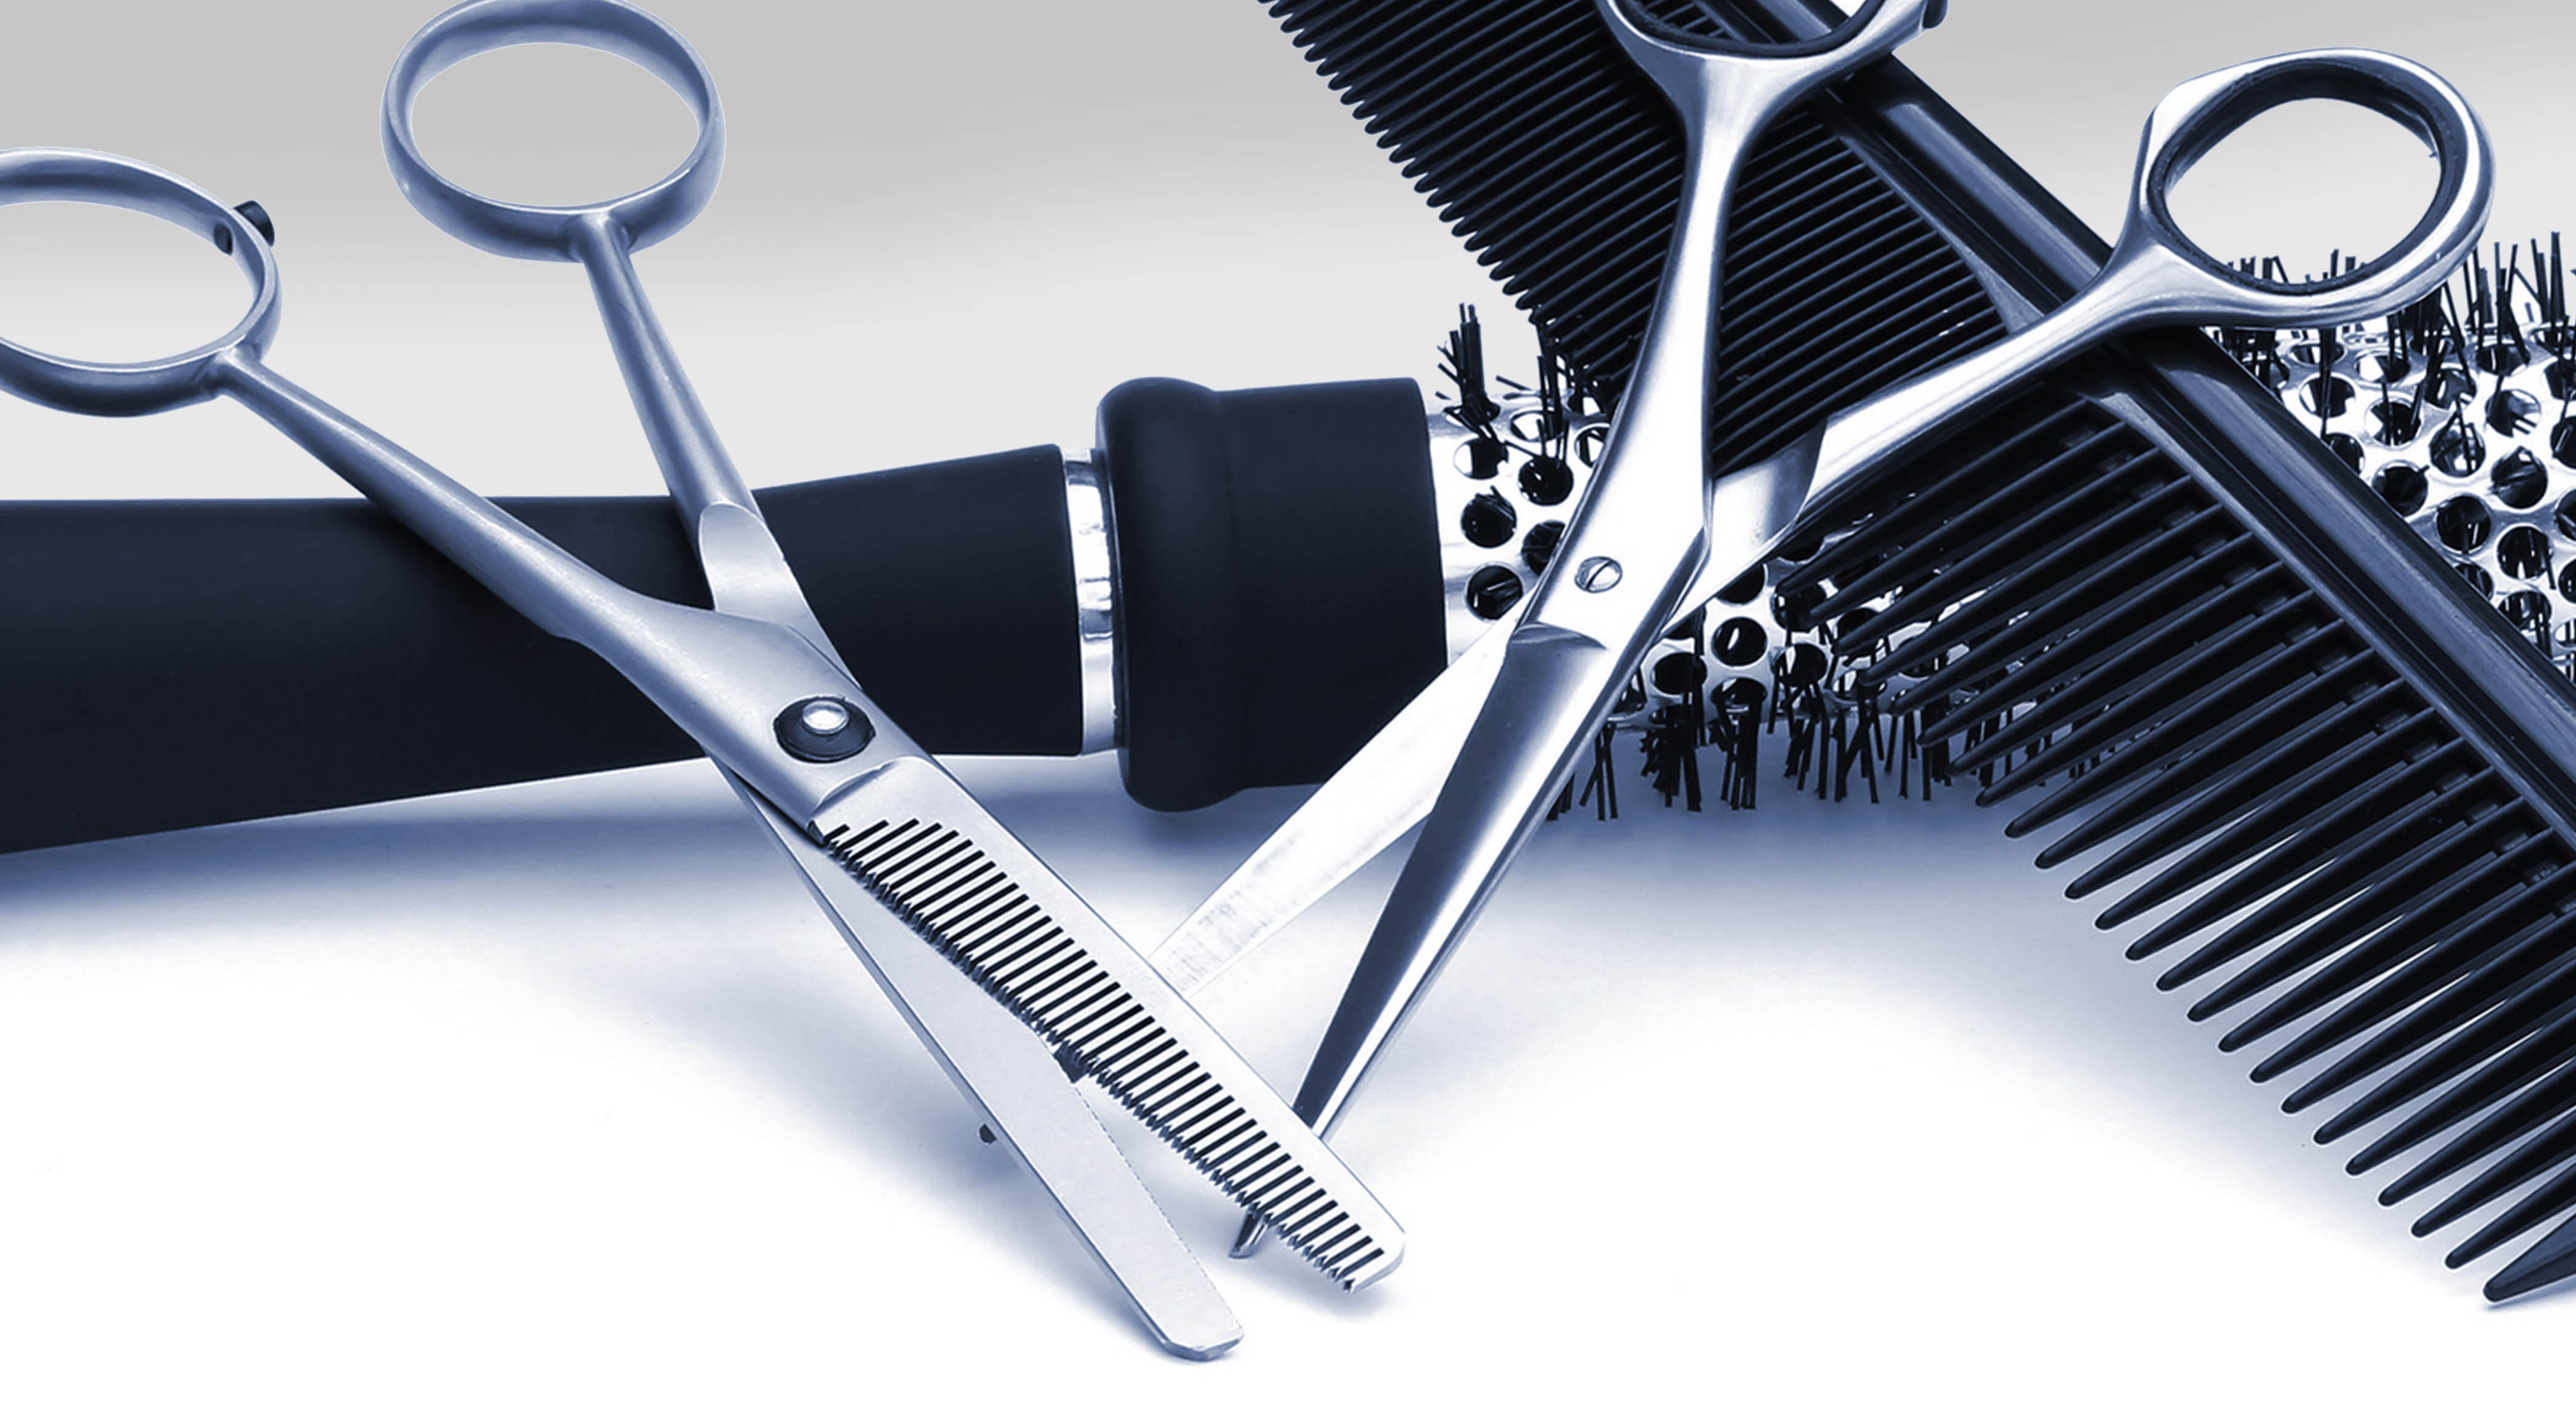 galerie-coiffeur-footer-mobil